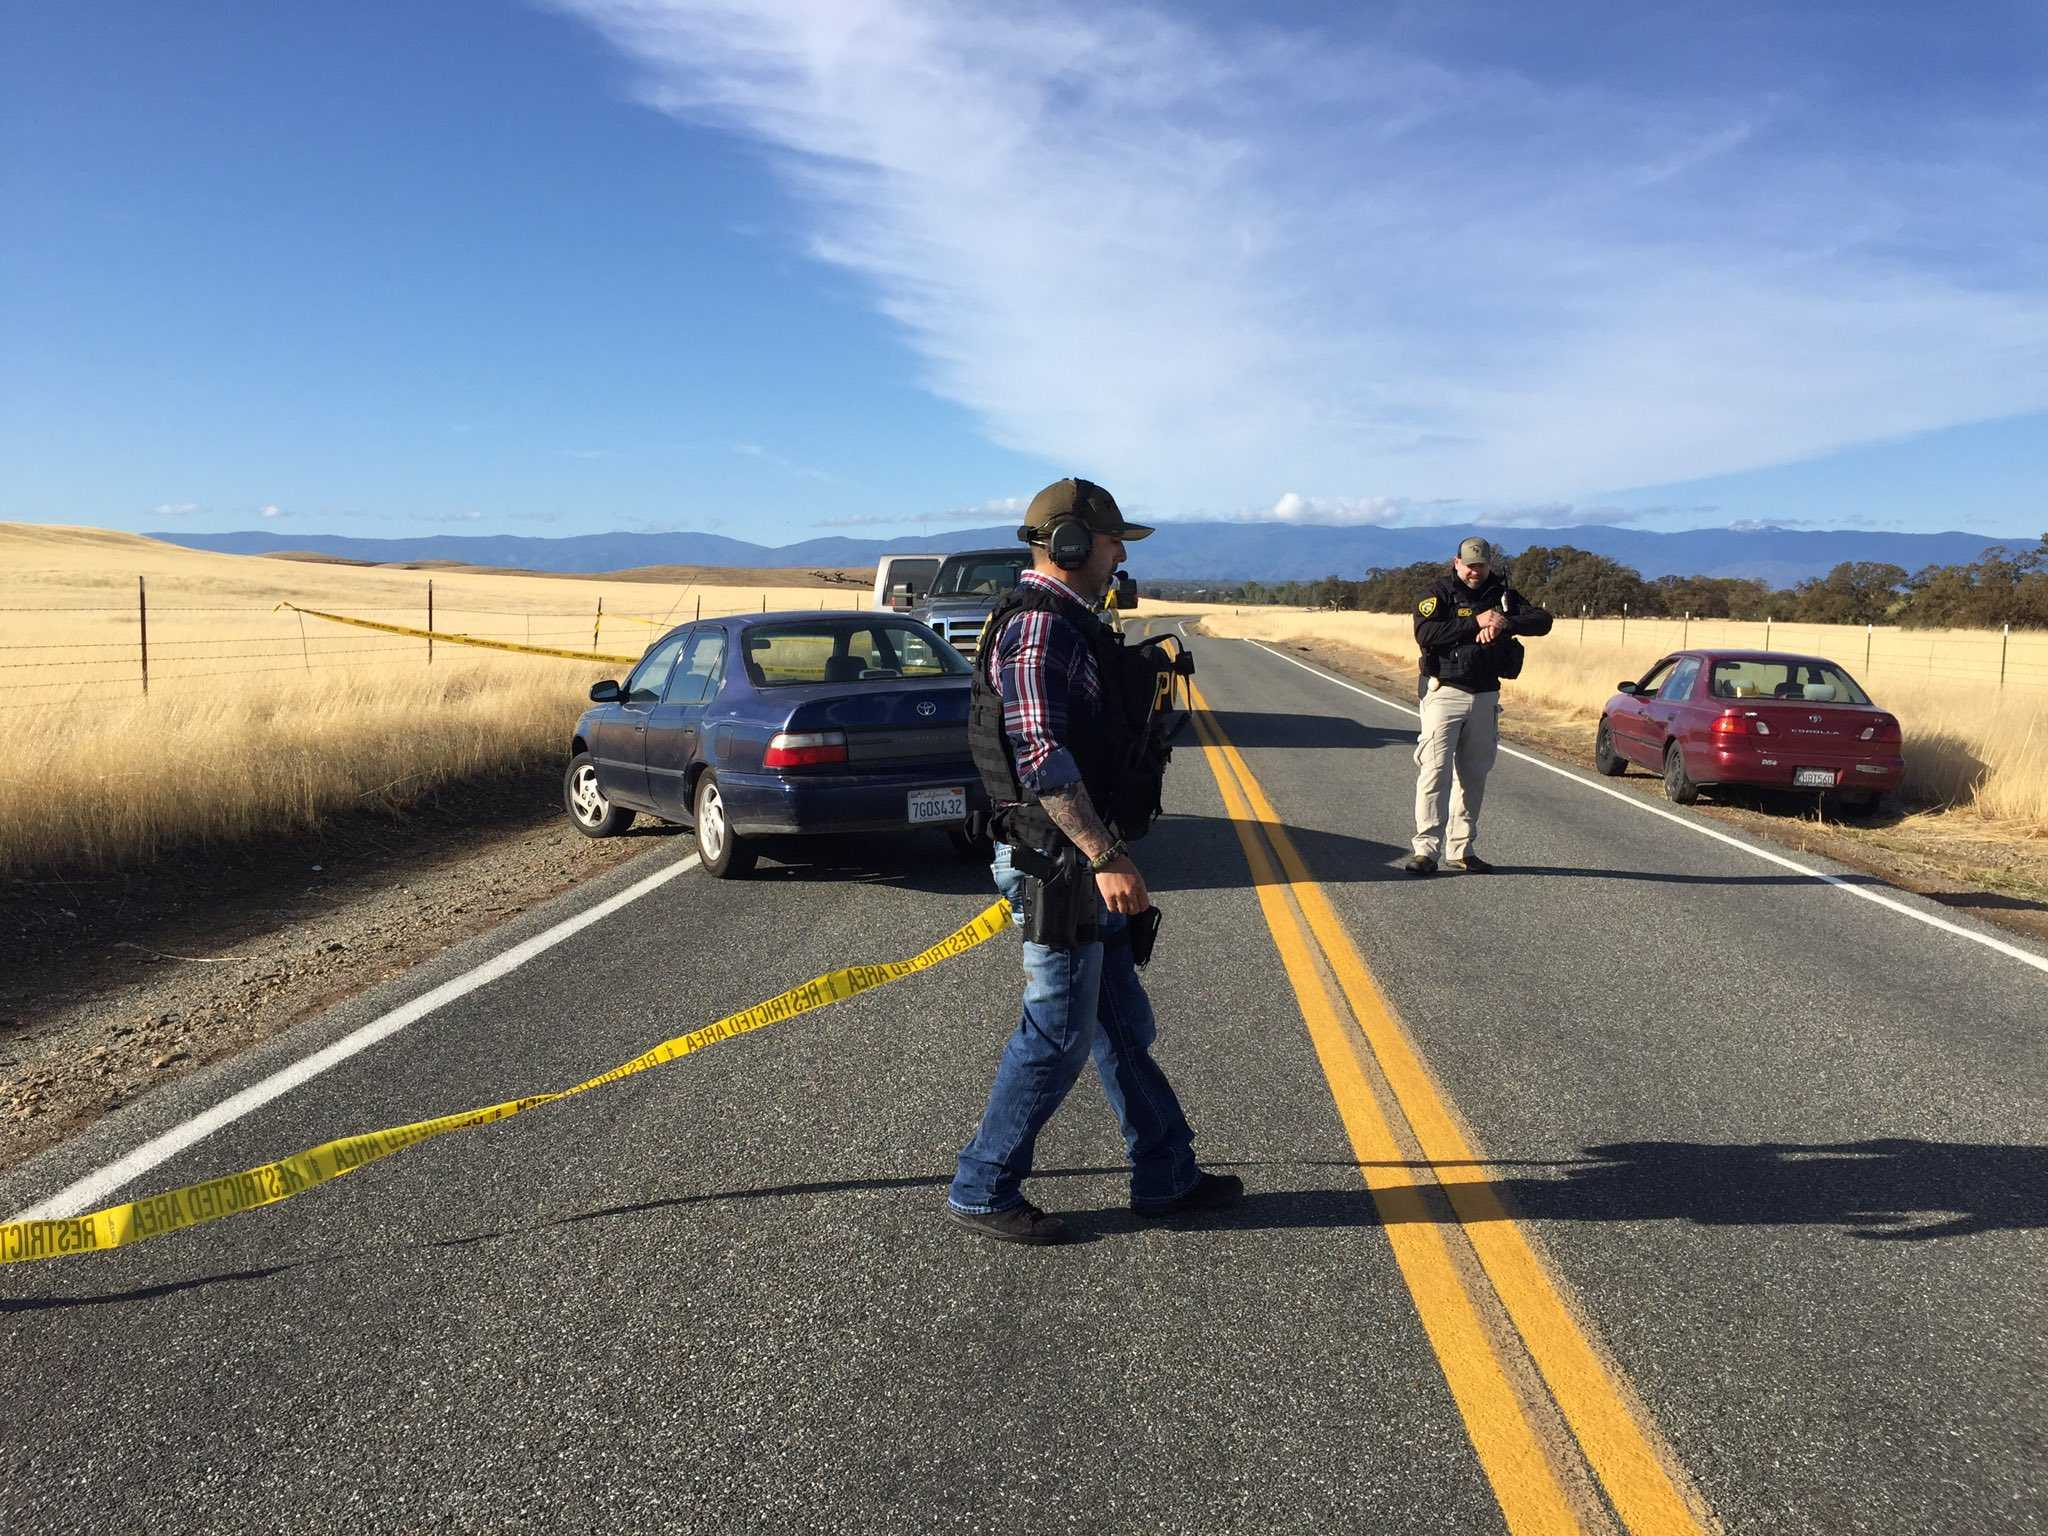 3 dead, shooter killed near Tehama County school